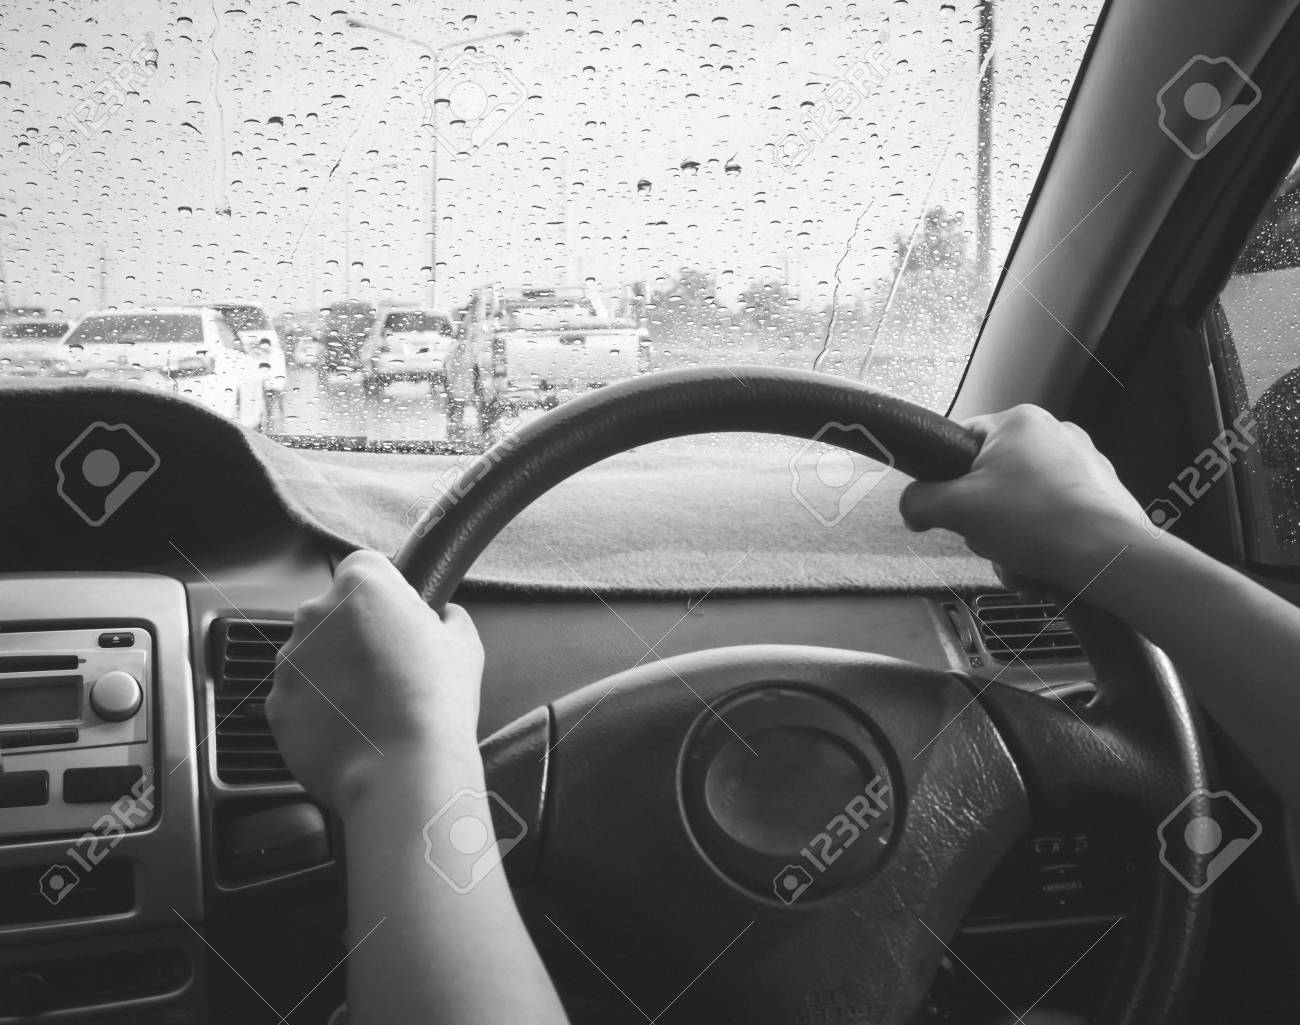 Drive In A Rainy Day Rain Drops On Windshield Car Take Photo Stock Photo Picture And Royalty Free Image Image 98436515